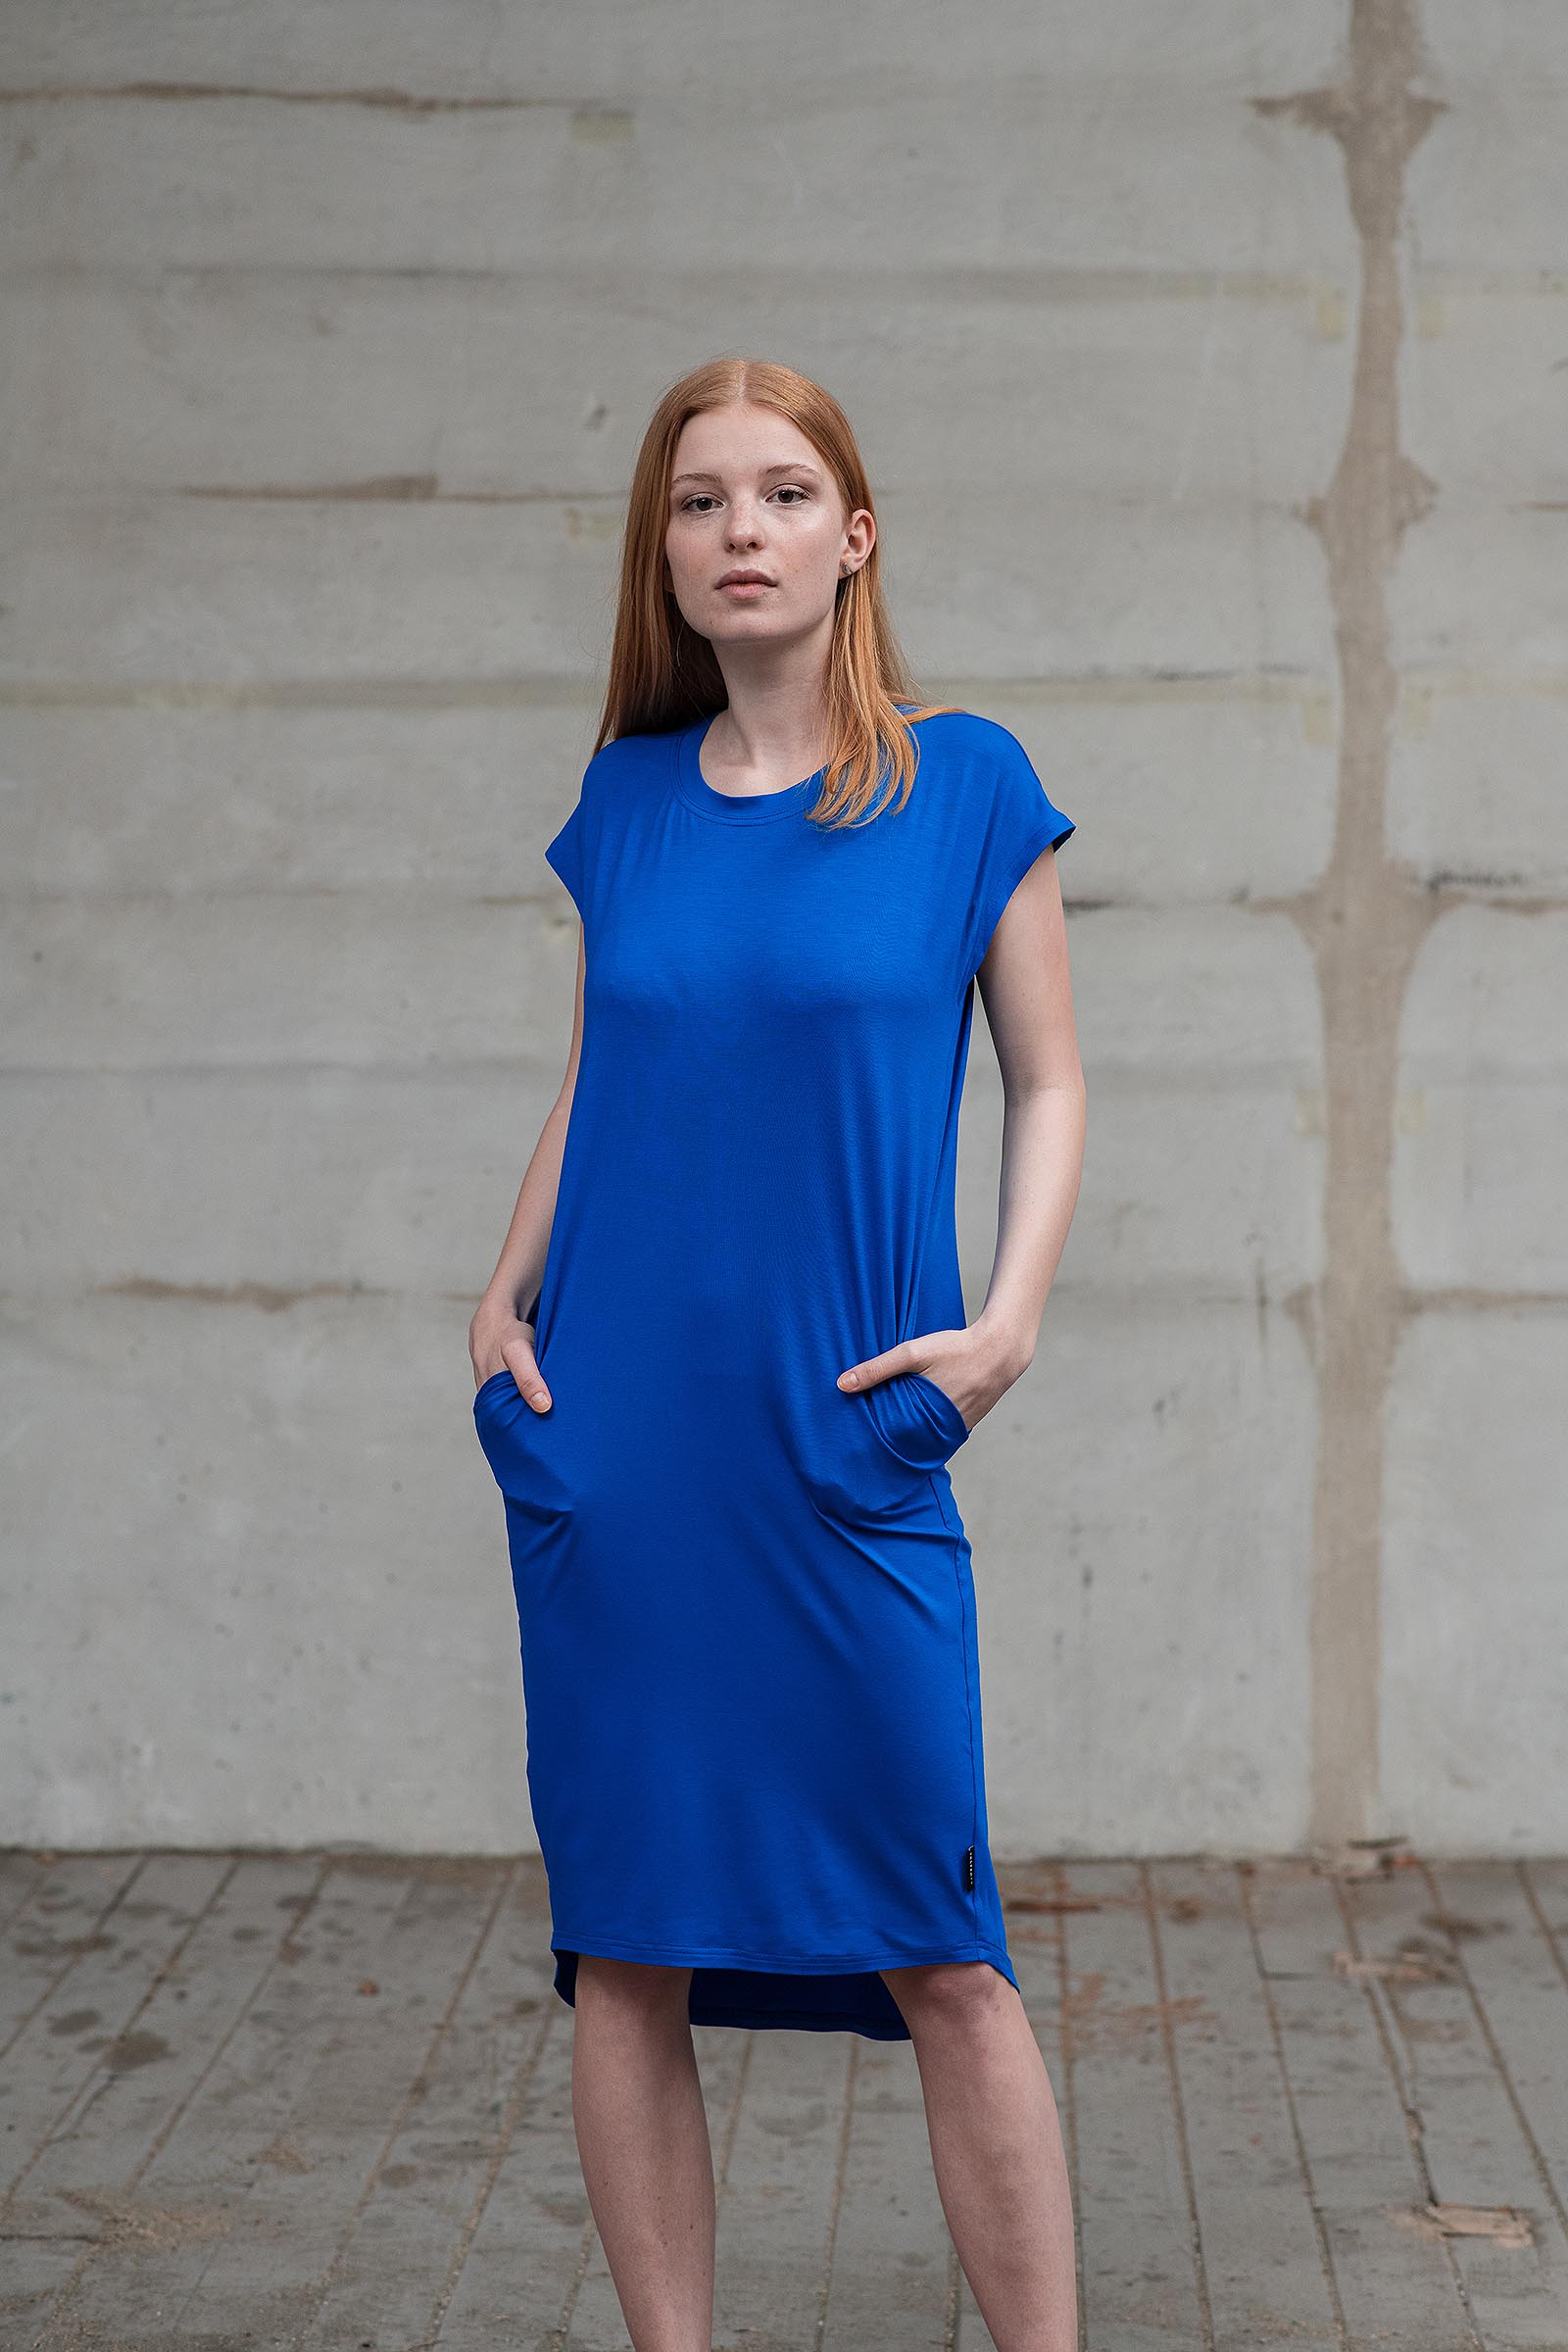 Dresses and skirts Naja 2.0 royal blue